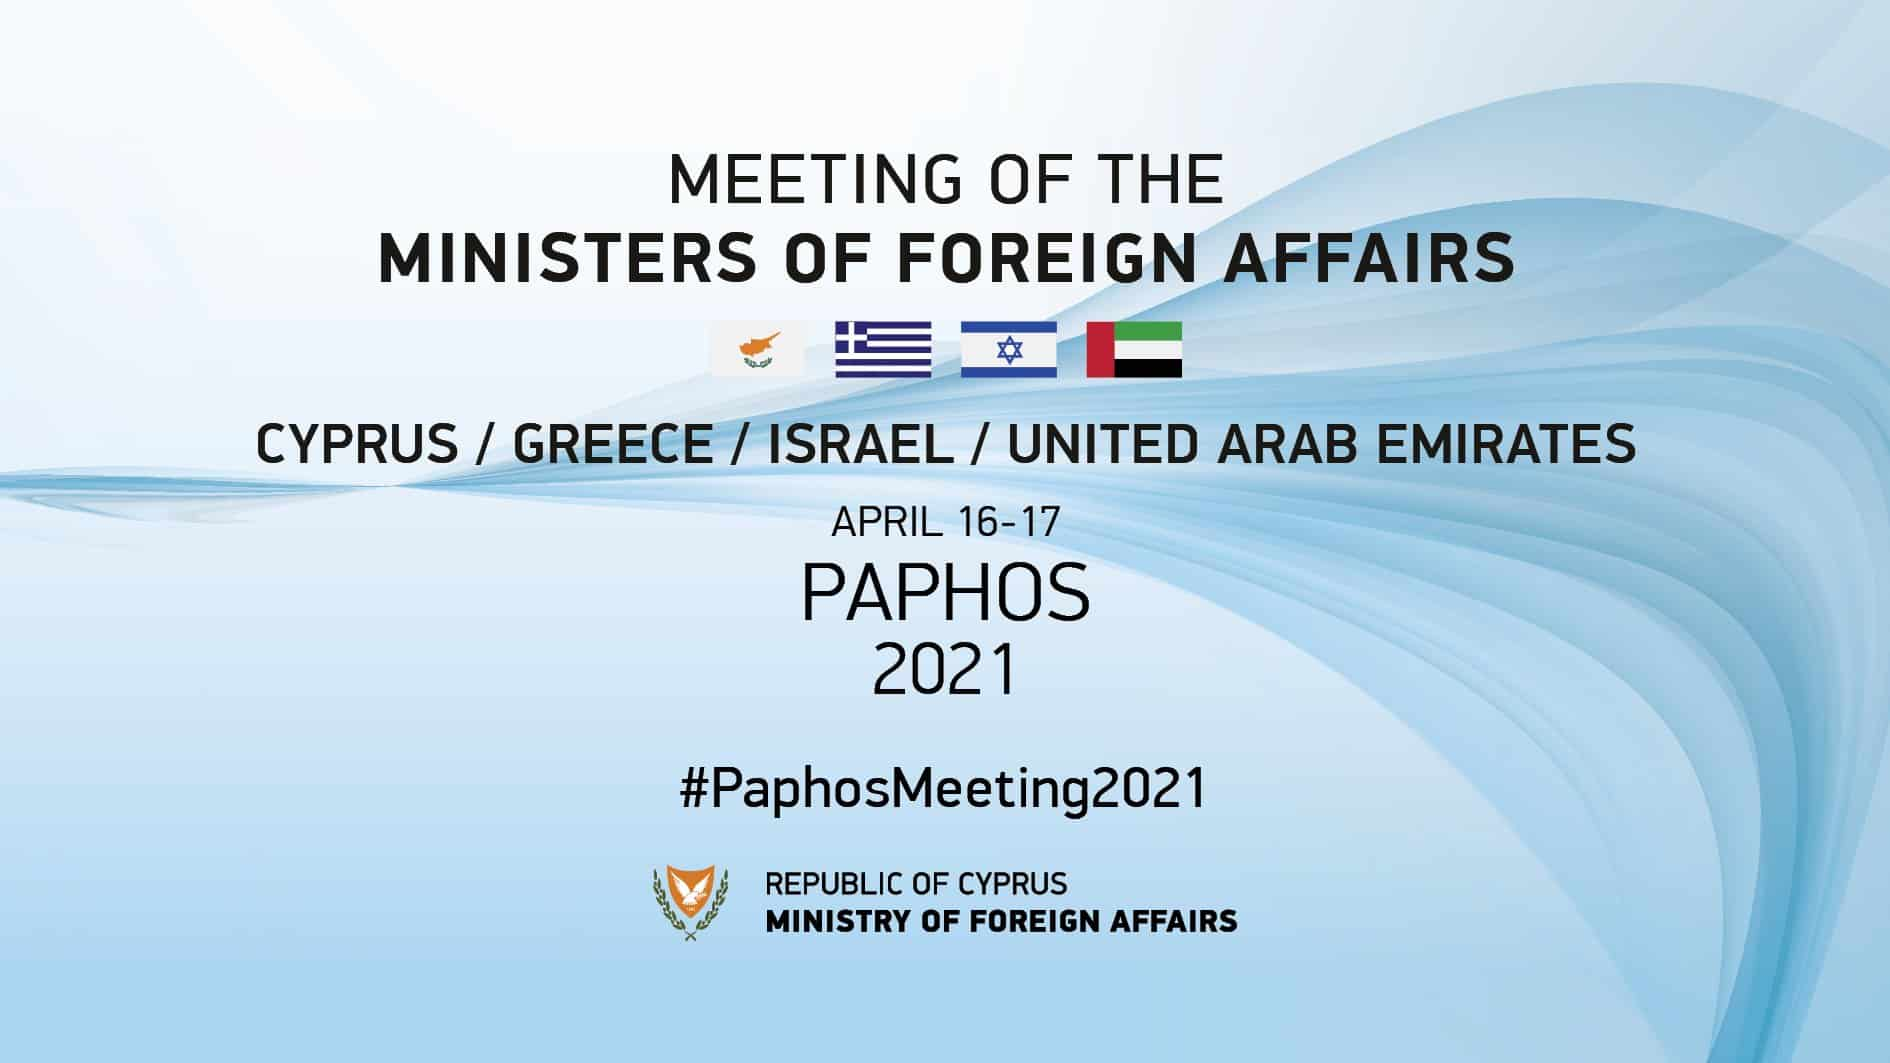 Cyprus, Greece, Israel And UAE To Meet In Paphos On Friday And Saturday - Greek City Times